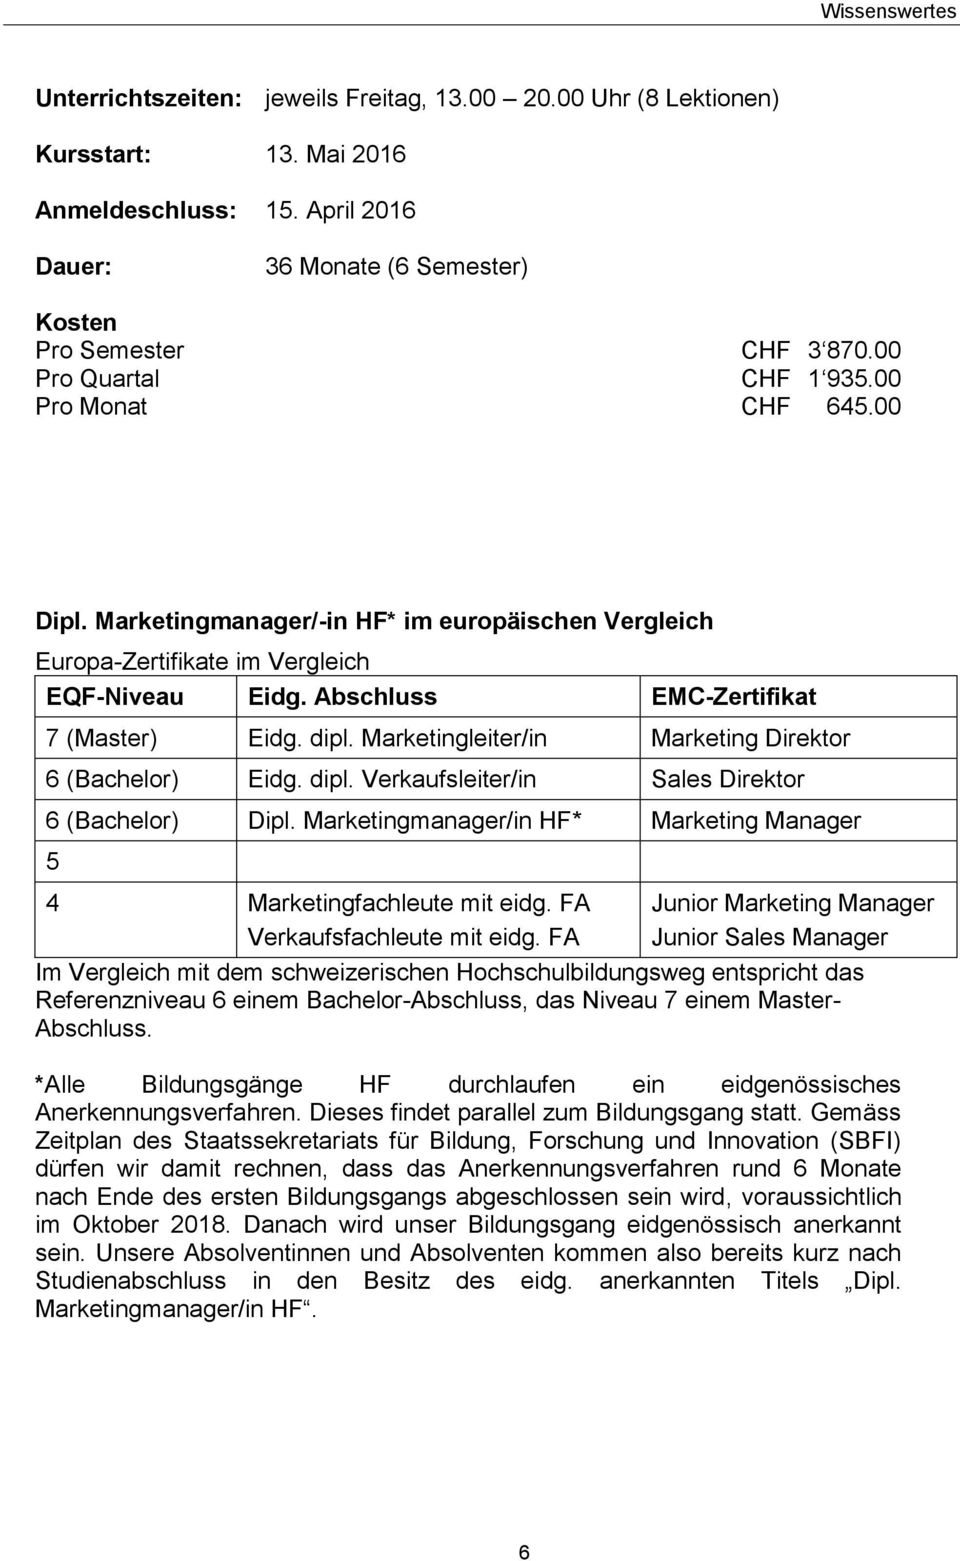 dipl. Marketingleiter/in Marketing Direktor 6 (Bachelor) Eidg. dipl. Verkaufsleiter/in Sales Direktor 6 (Bachelor) Dipl. Marketingmanager/in HF* Marketing Manager 5 4 Marketingfachleute mit eidg.